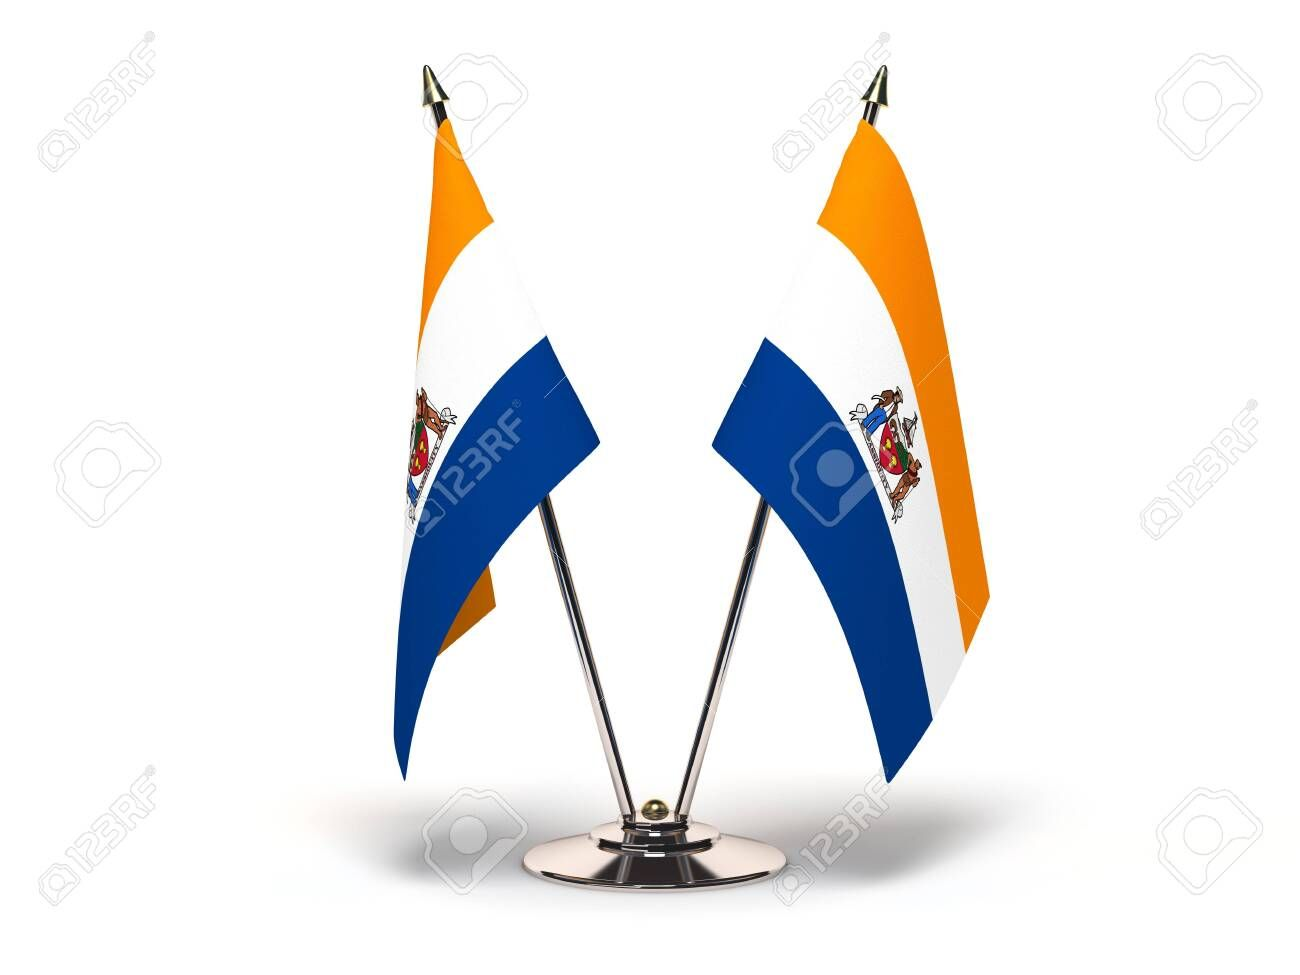 New York Albany Flag Flags Isolated With Clipping Path Affiliate Flag Albany York Fl Business Card Black Graphic Design Tutorials Design Tutorials